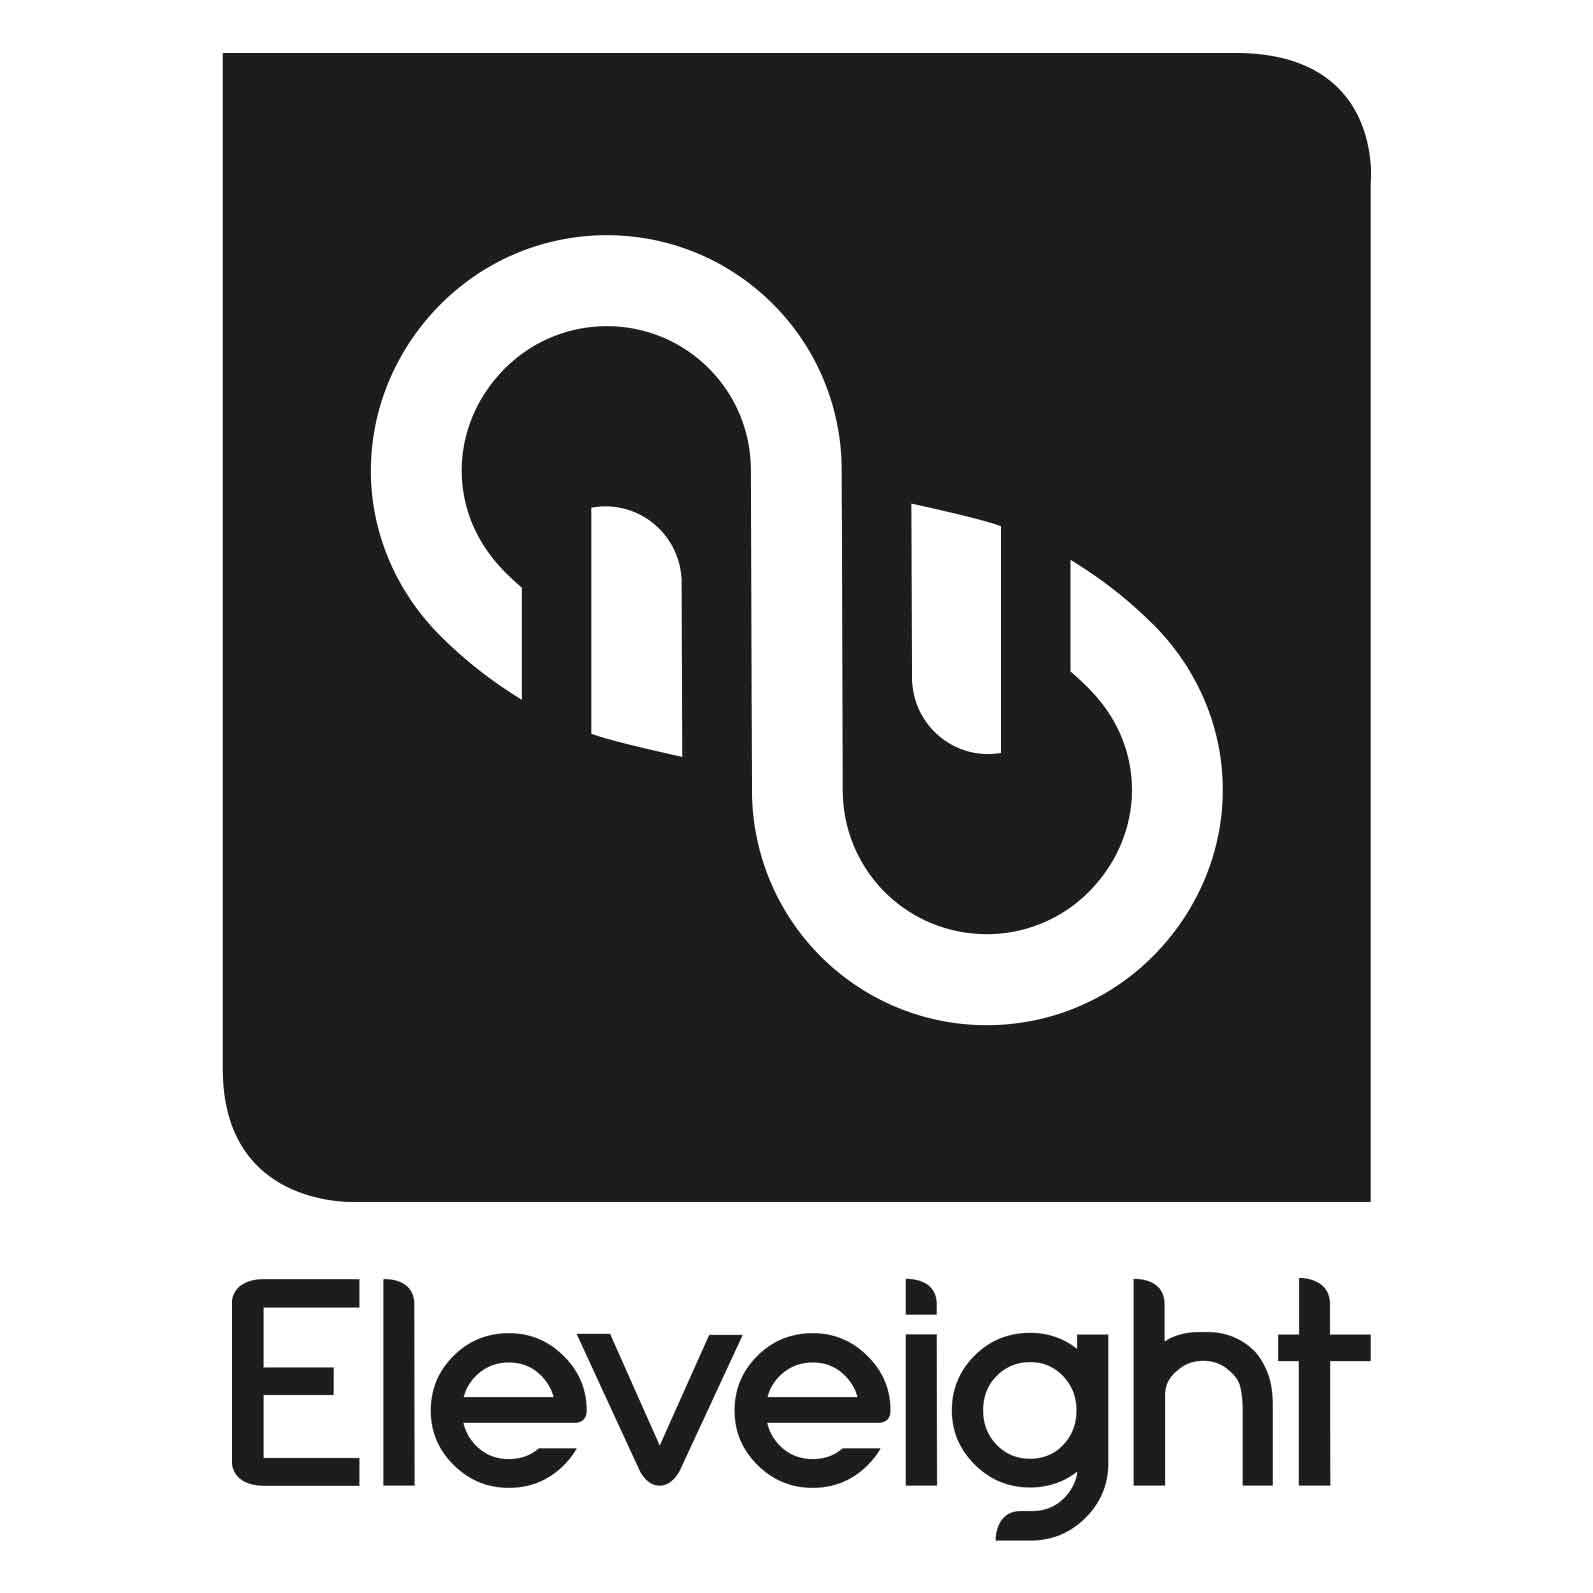 Eleveight kites